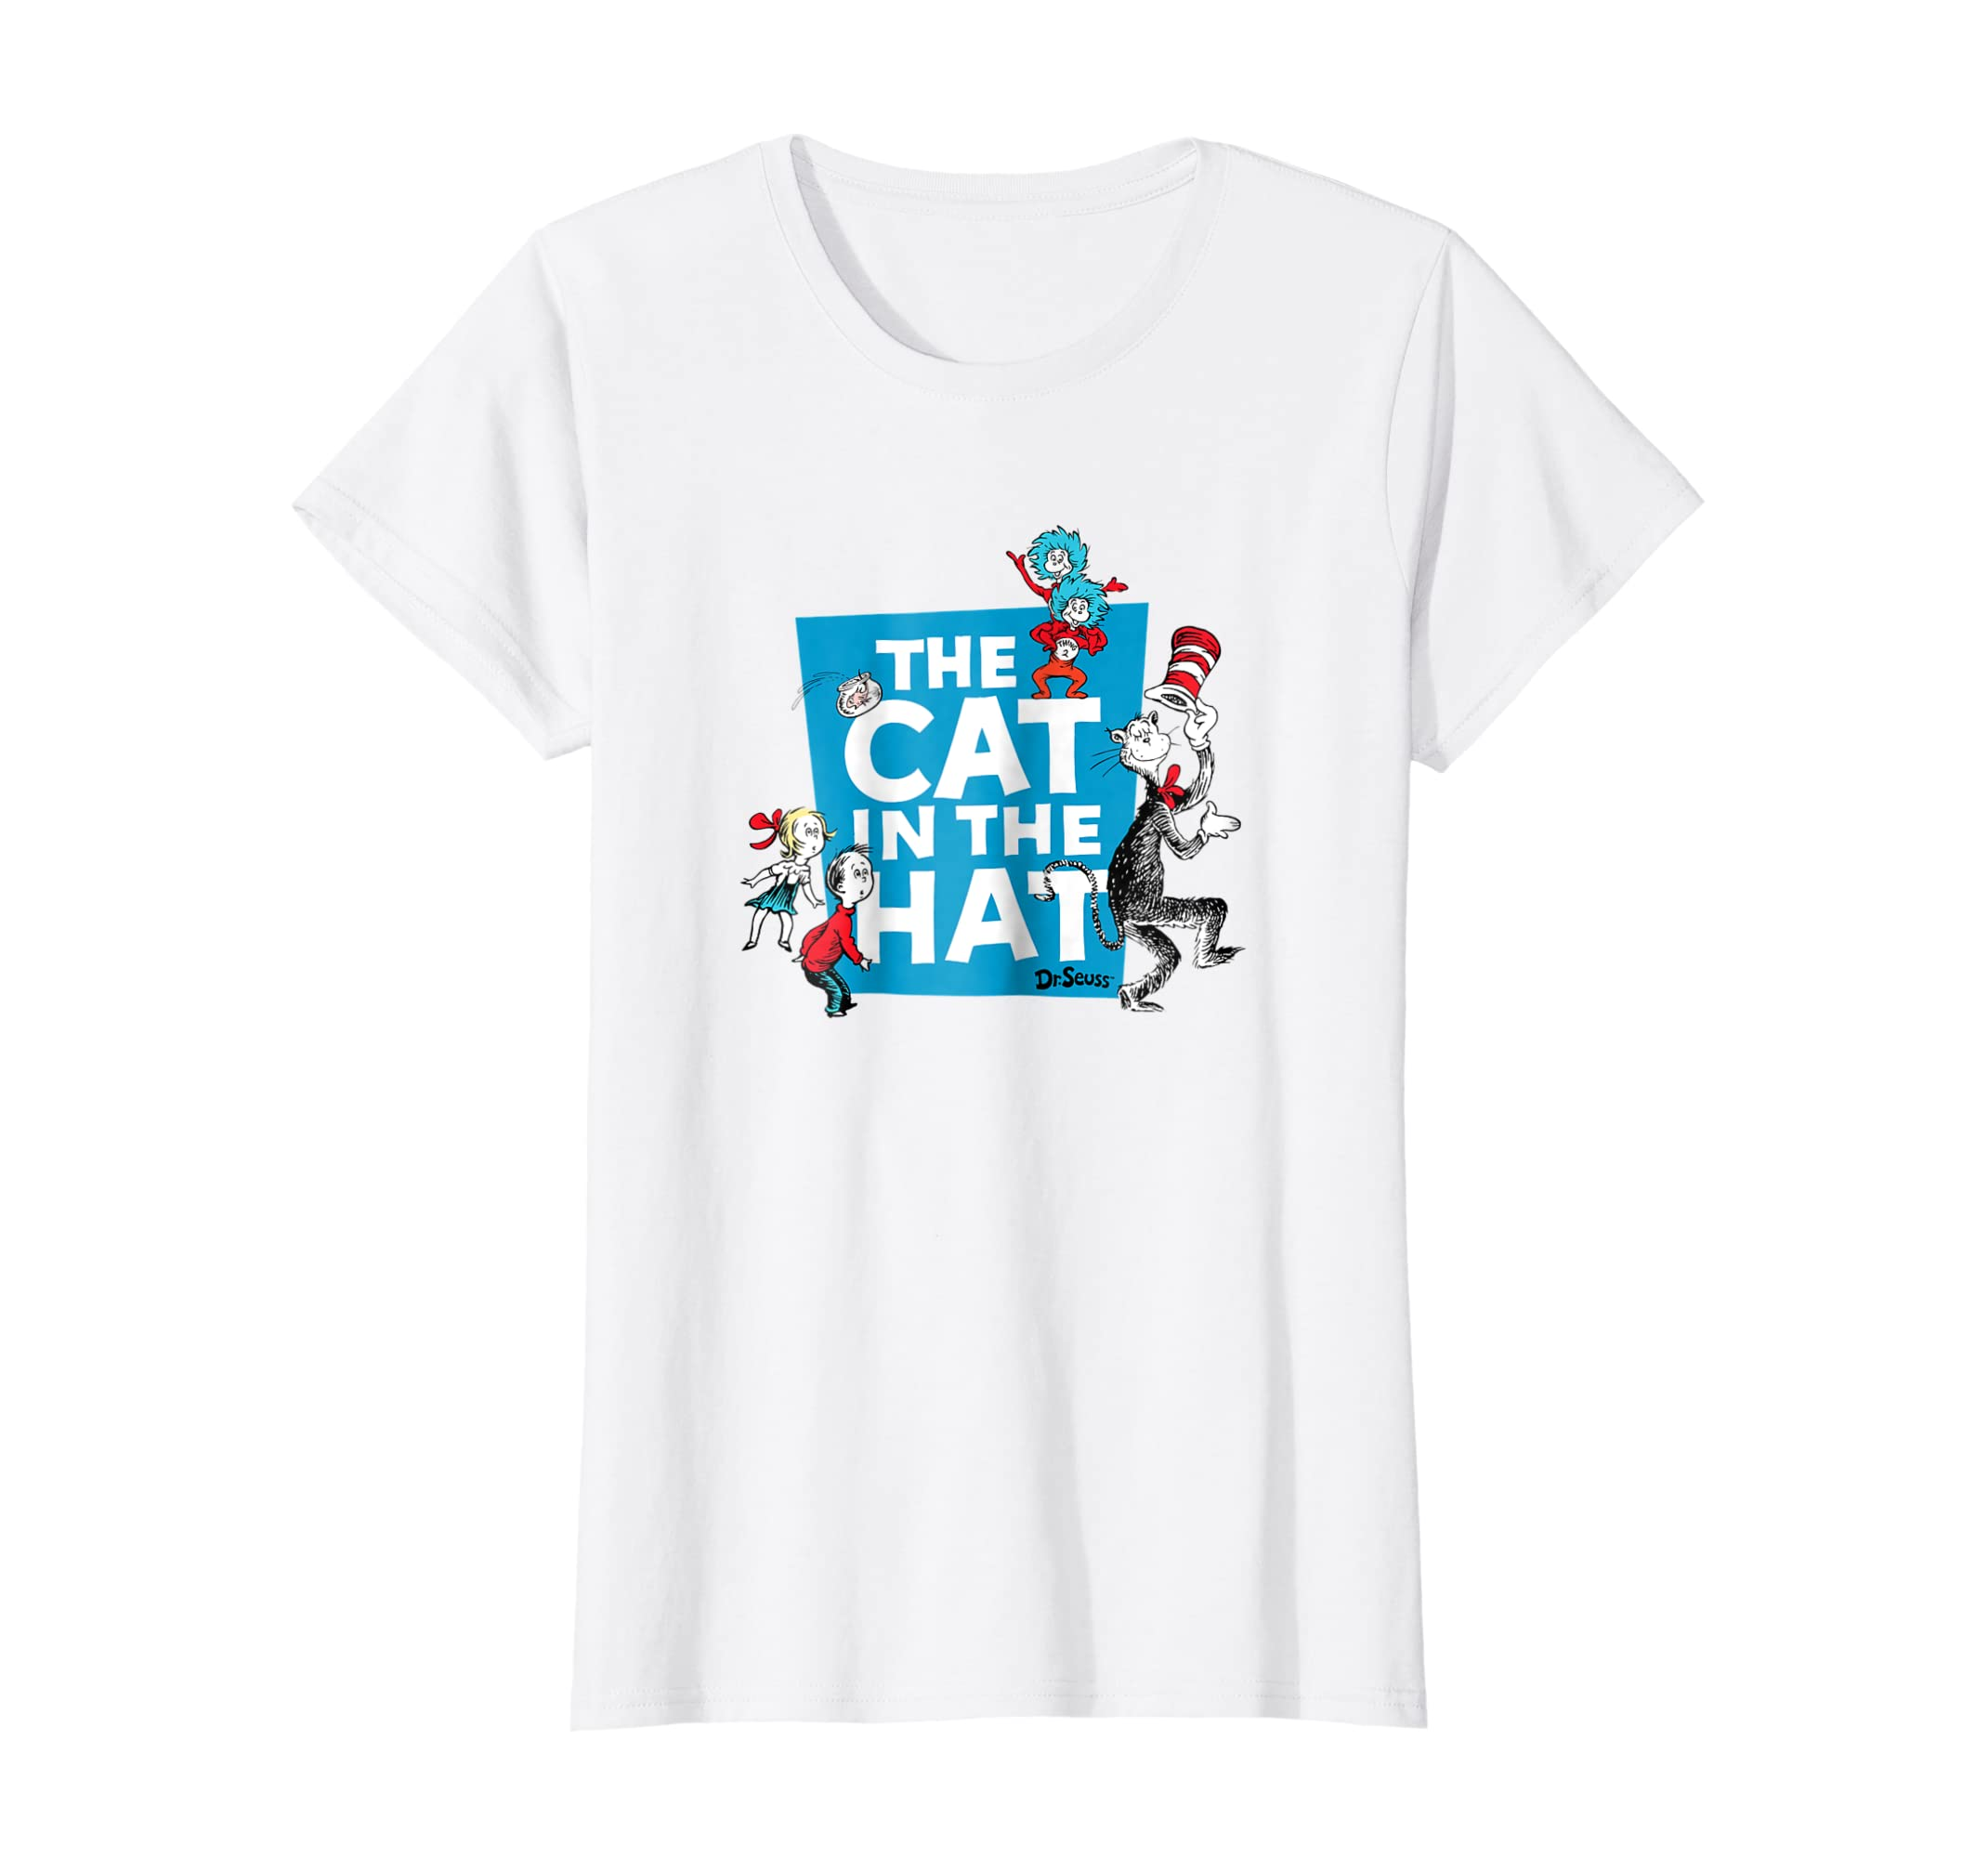 Dr Seuss T Shirts For Adults Amazon Anlis